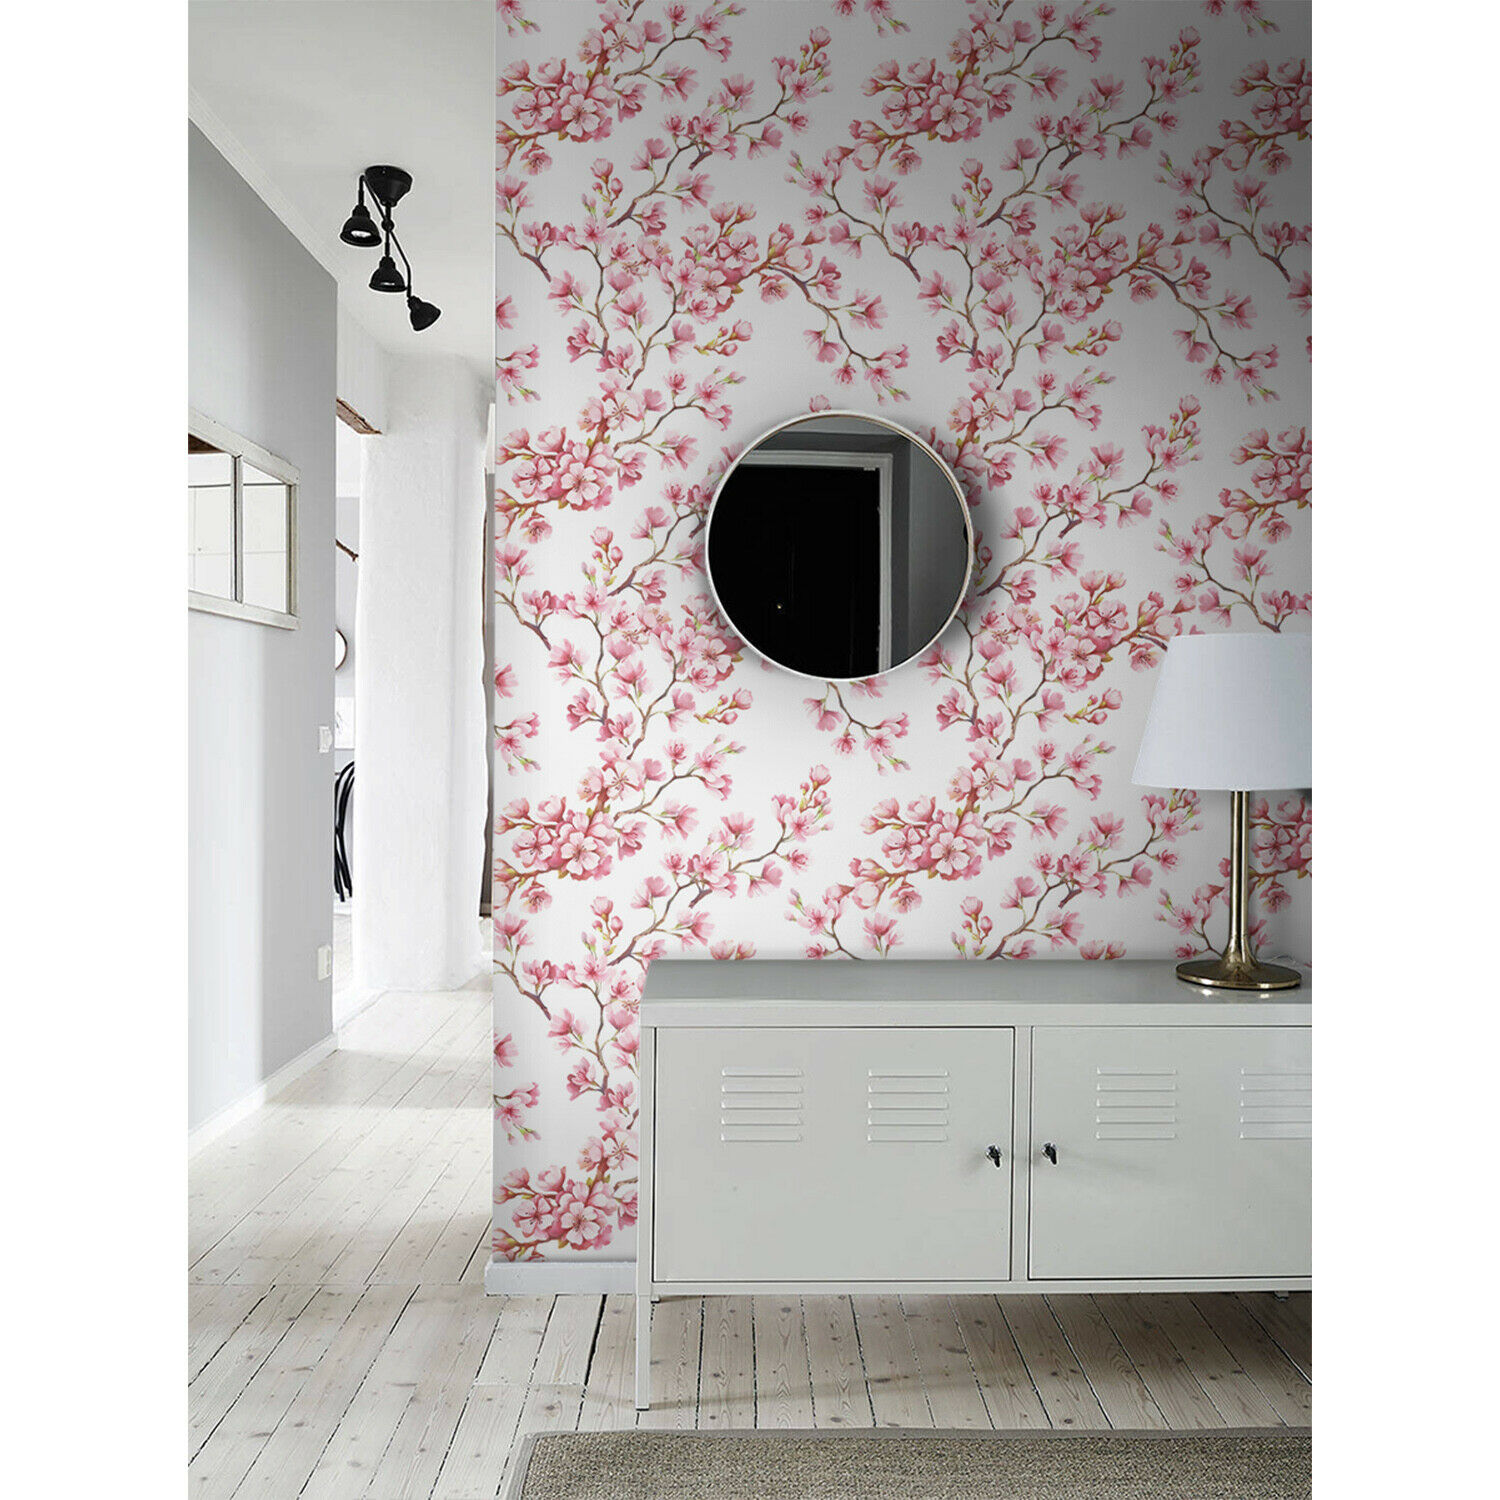 Cherry Blossom wall decor Floral removable wallpaper Flowers mural Self-adhesive